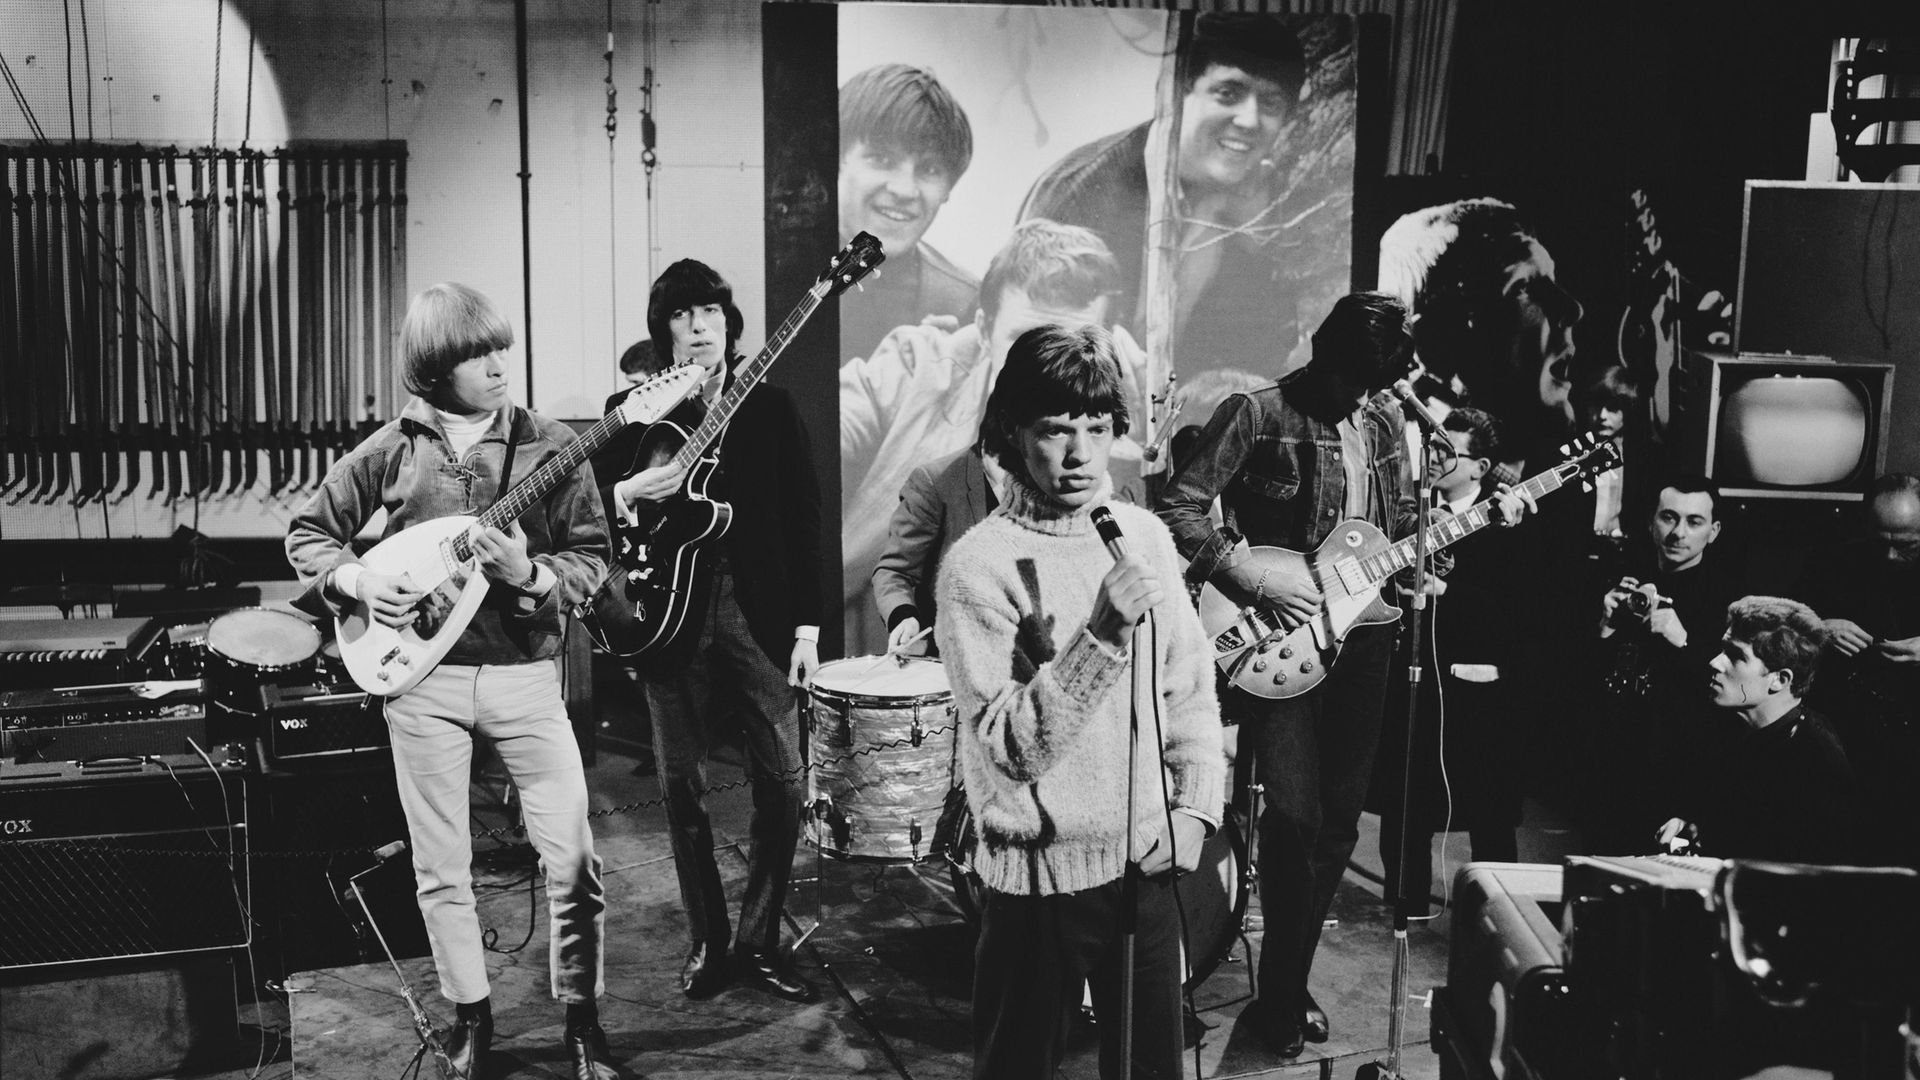 The Rolling Stones rehearsing for an appearance on Ready Steady Go! in 1965. Left to right: Brian Jones, Bill Wyman, Mick Jagger and Keith Richards - Credit: Getty Images